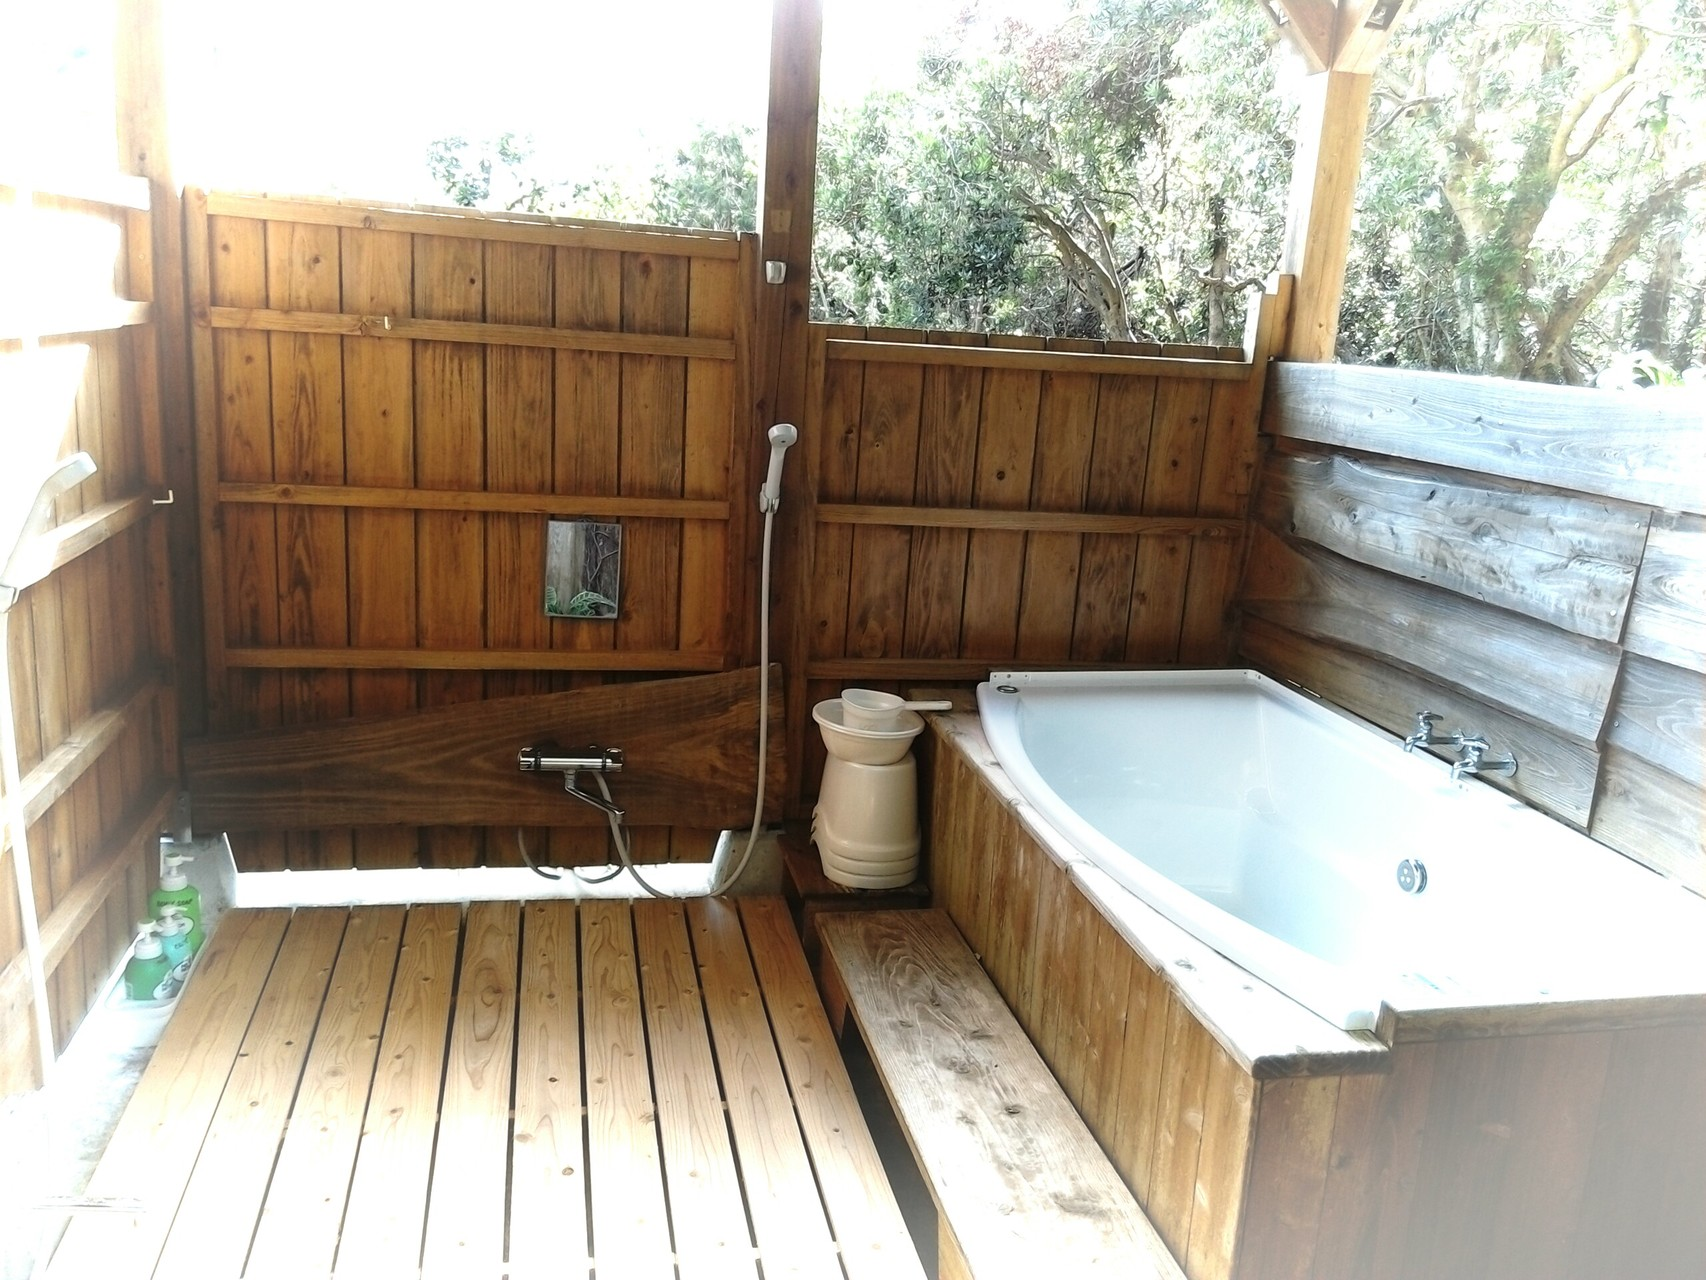 露天風呂内部  Outdoor hotspring bath